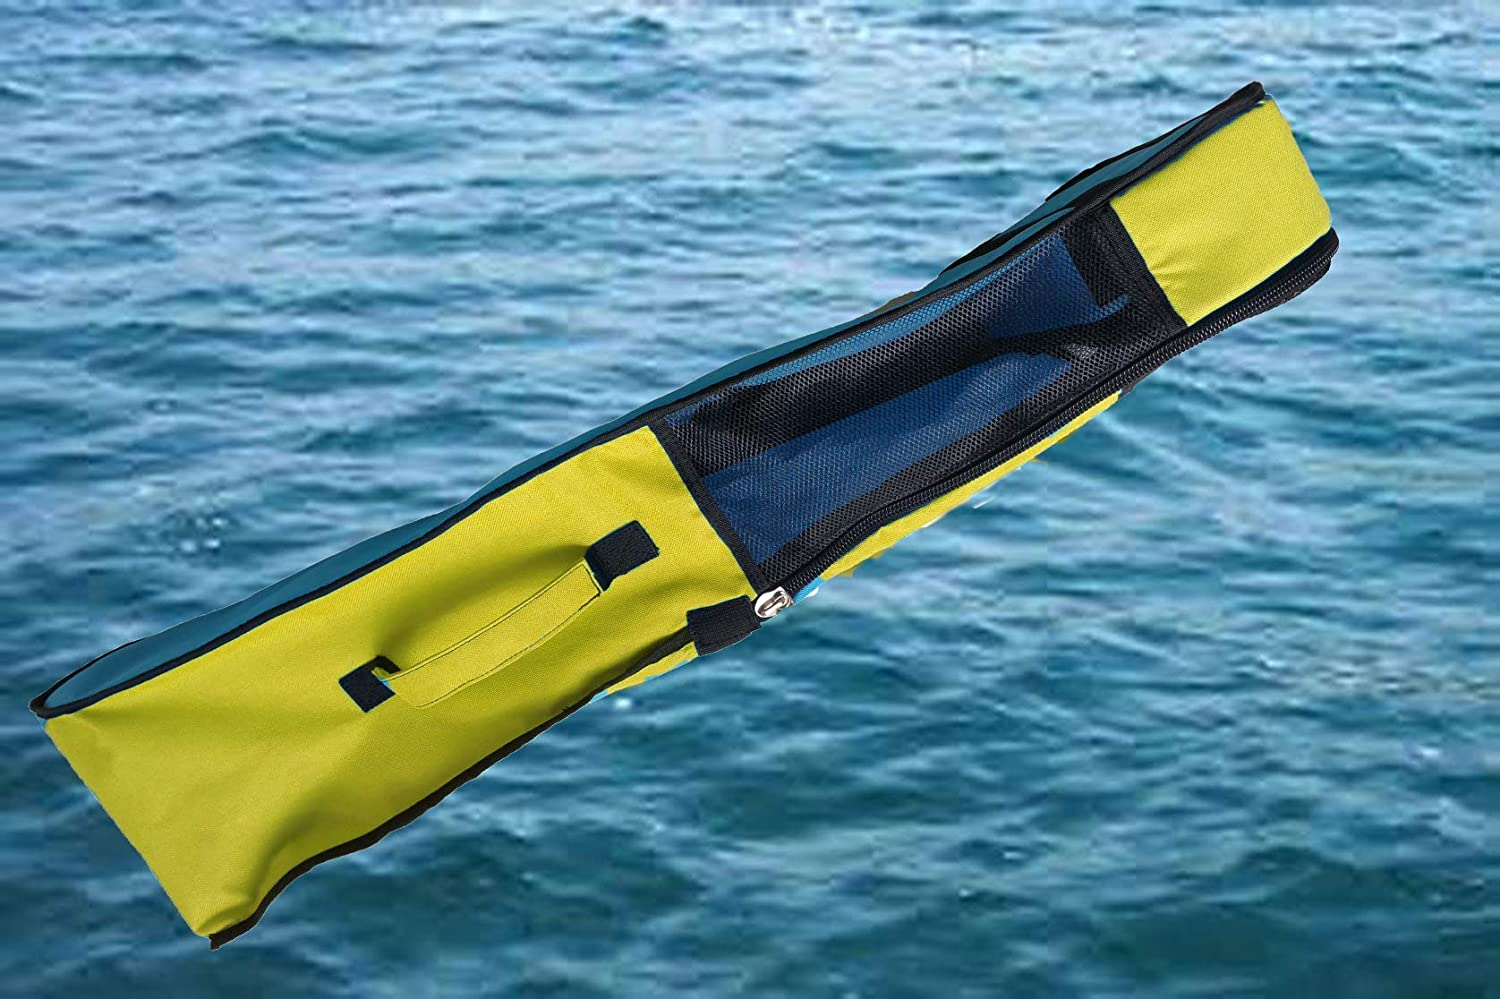 AKM-Fin-Bag Special Classic sale item Snorkel-Diving-Swimming-Fin YELLOW